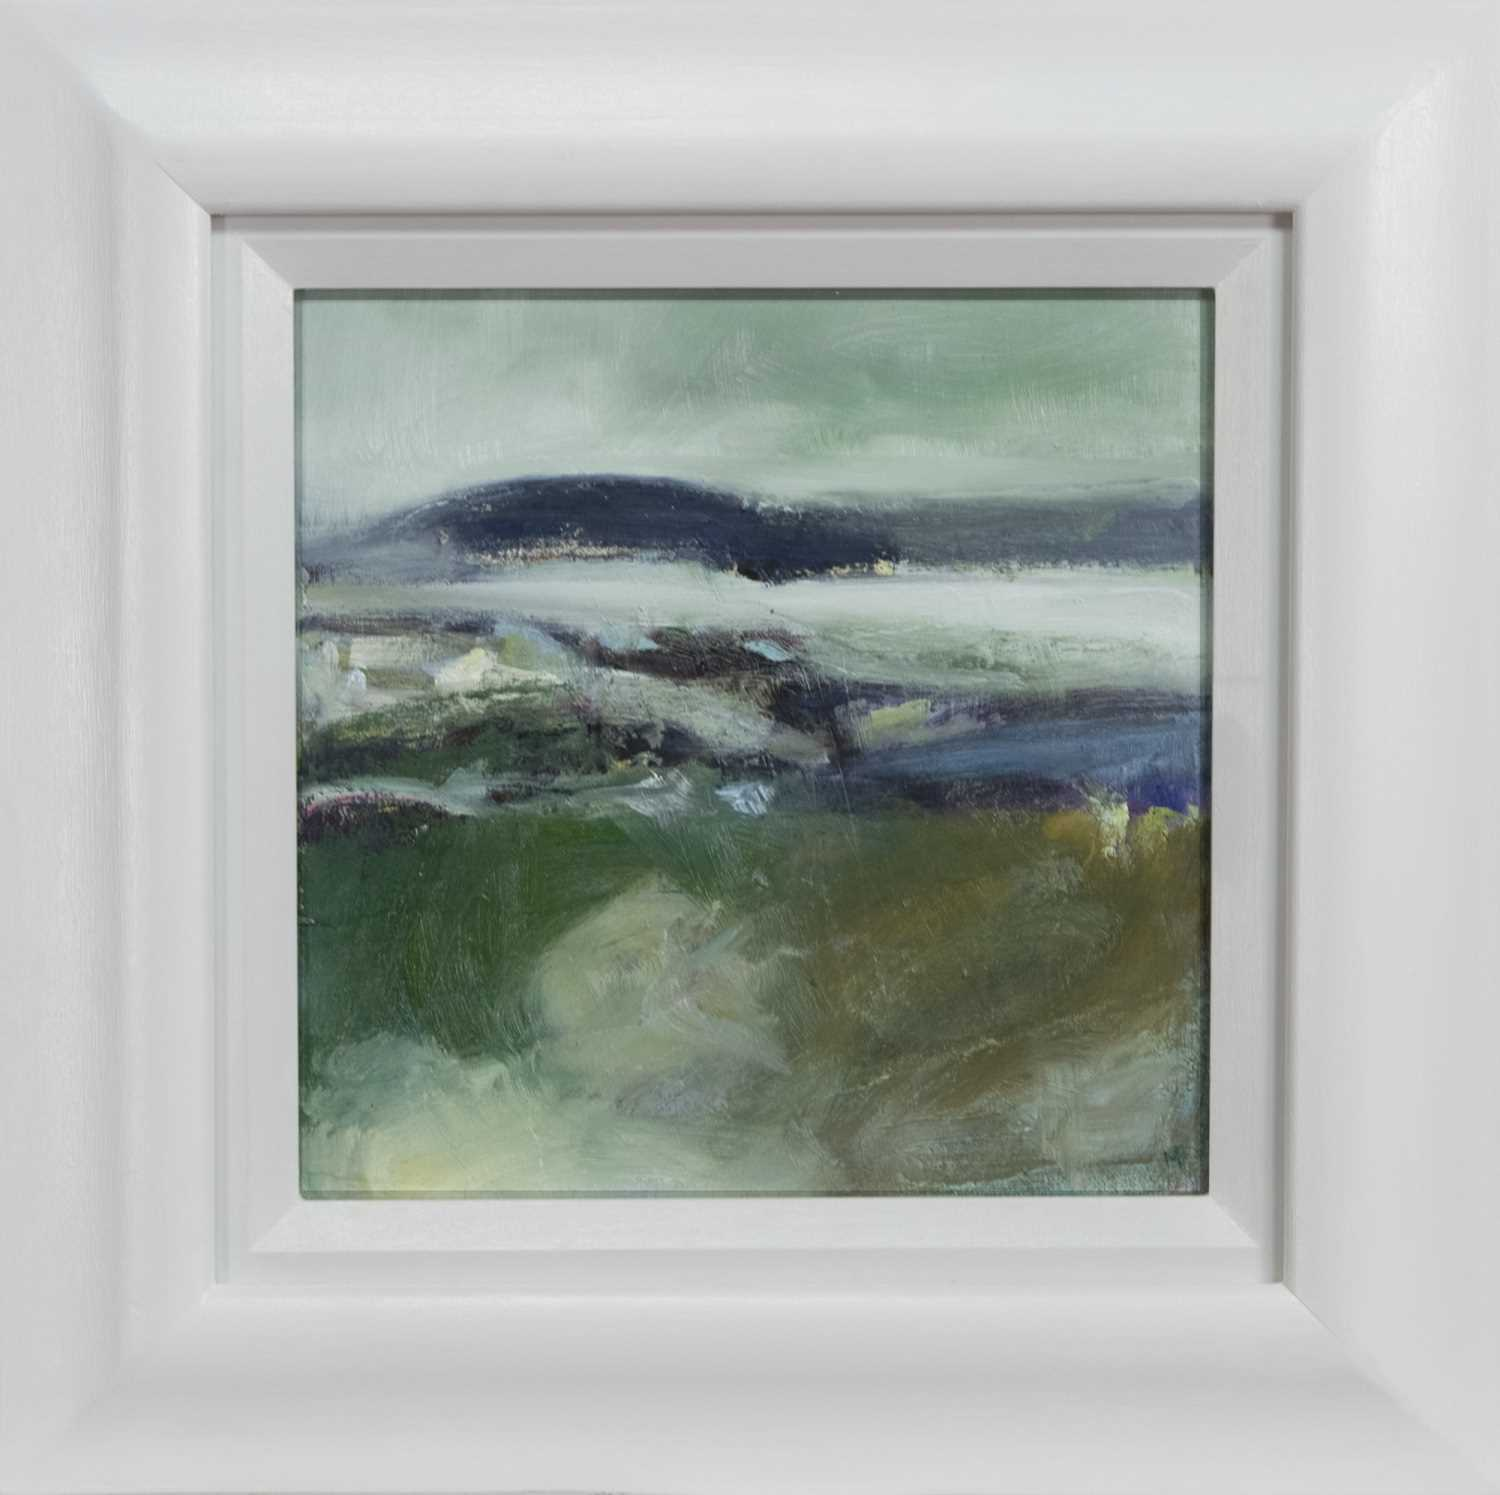 Lot 651 - ROLLERCOASTER SEA, HEBRIDES, AN OIL BY MAY BYRNE